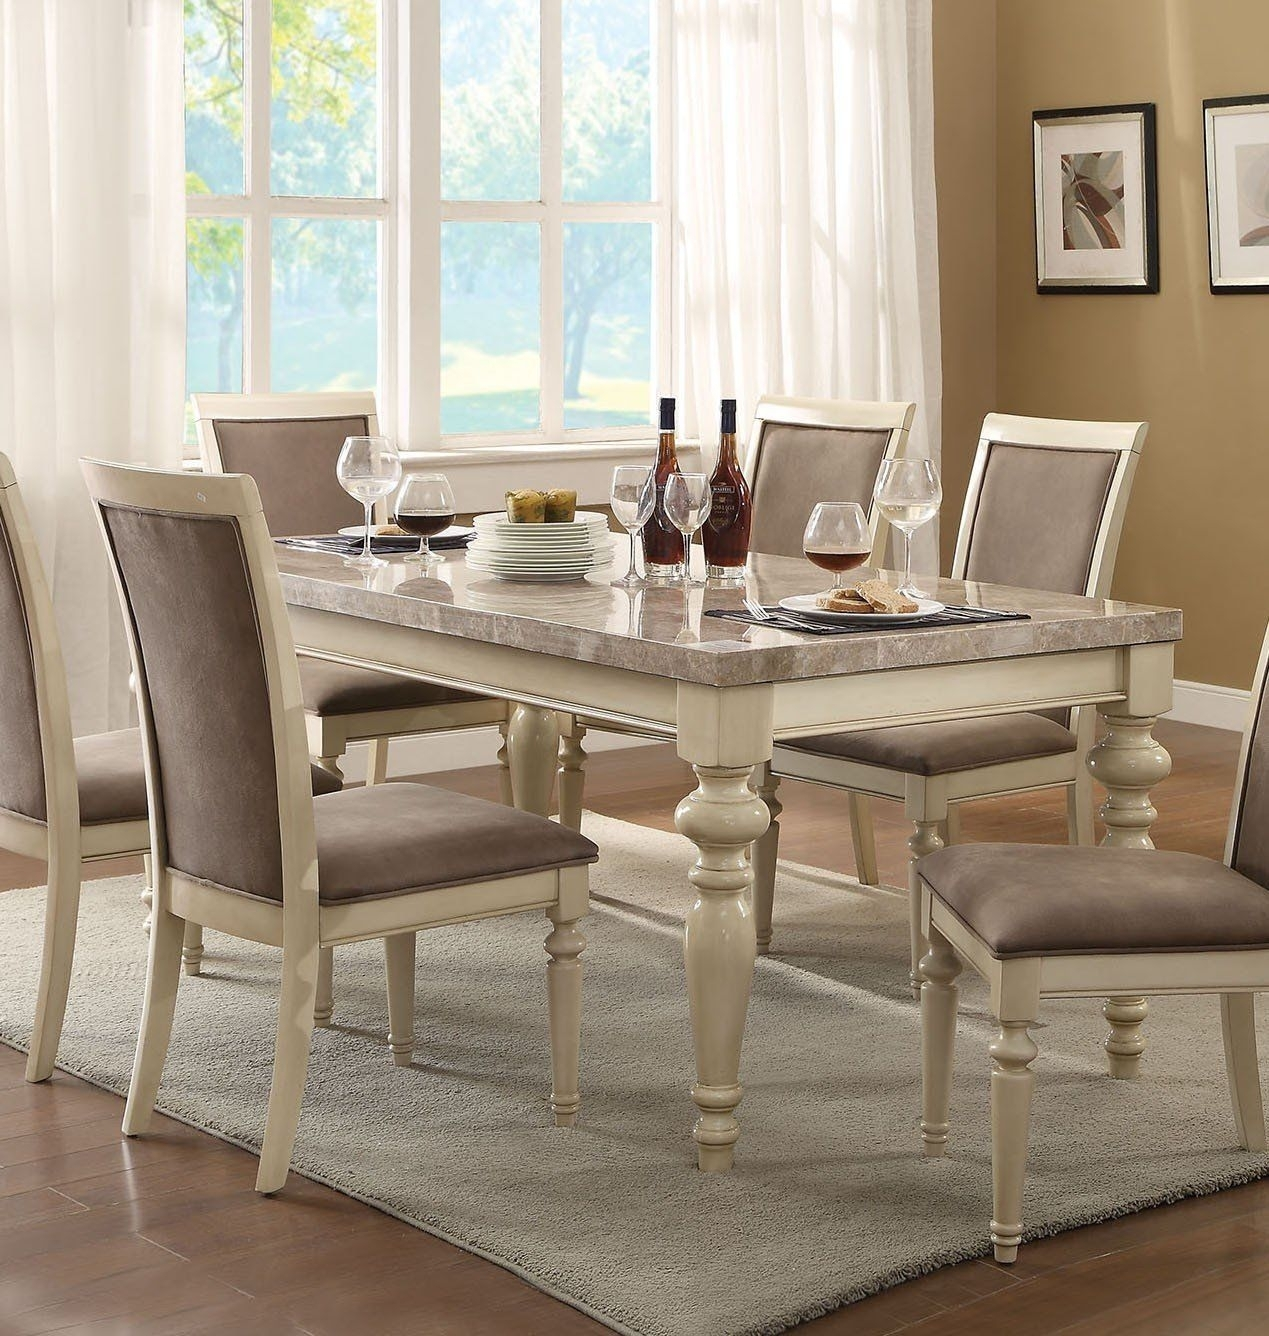 Acme 71705 Ryder Antique White Marble Top Dining Table | Home With Most Recent Caira 9 Piece Extension Dining Sets With Diamond Back Chairs (View 9 of 20)